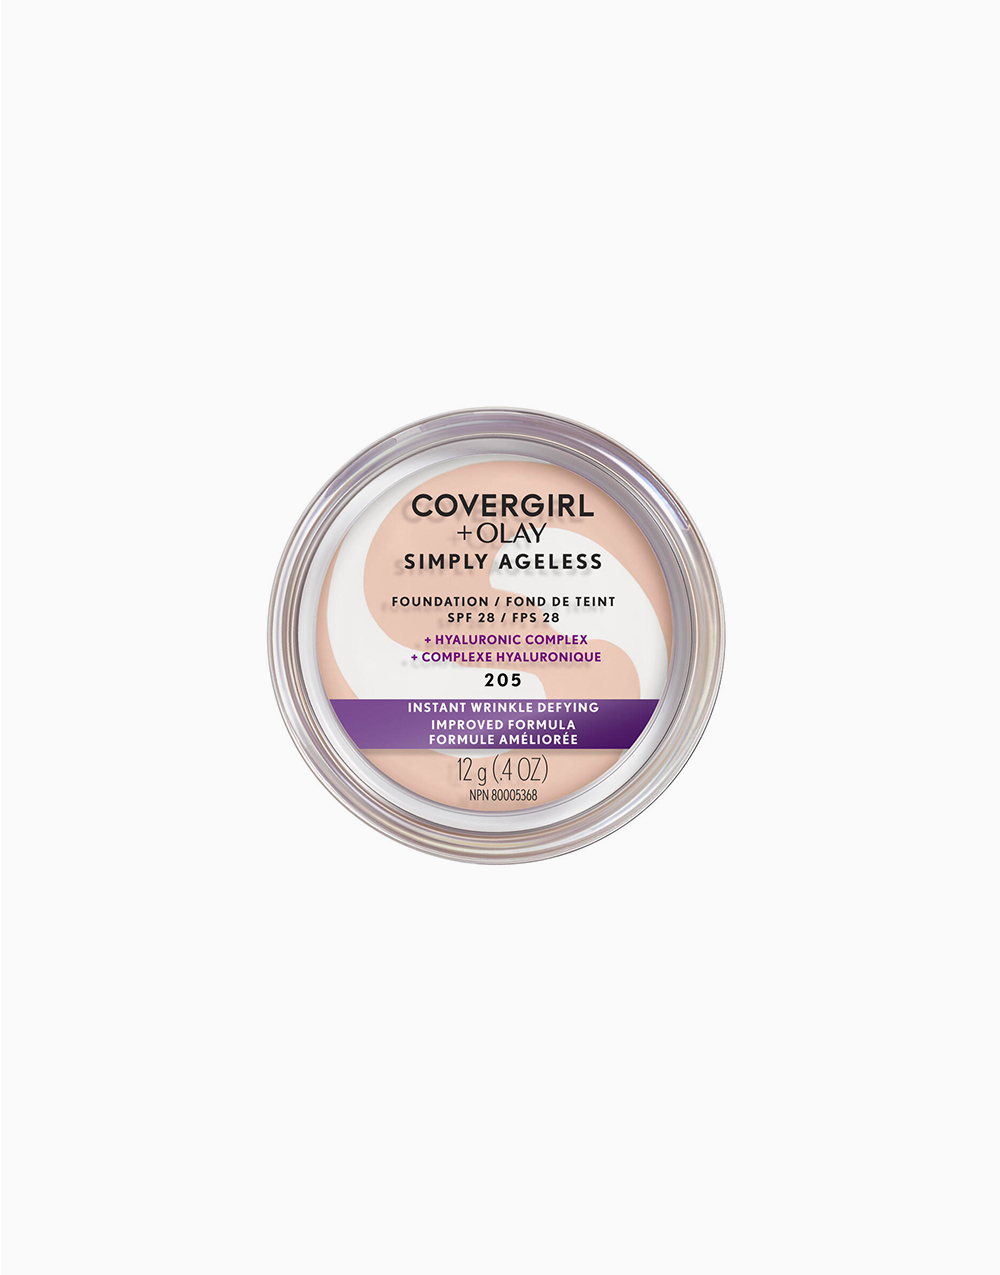 Simply Ageless Wrinkle Defy Foundation by CoverGirl |